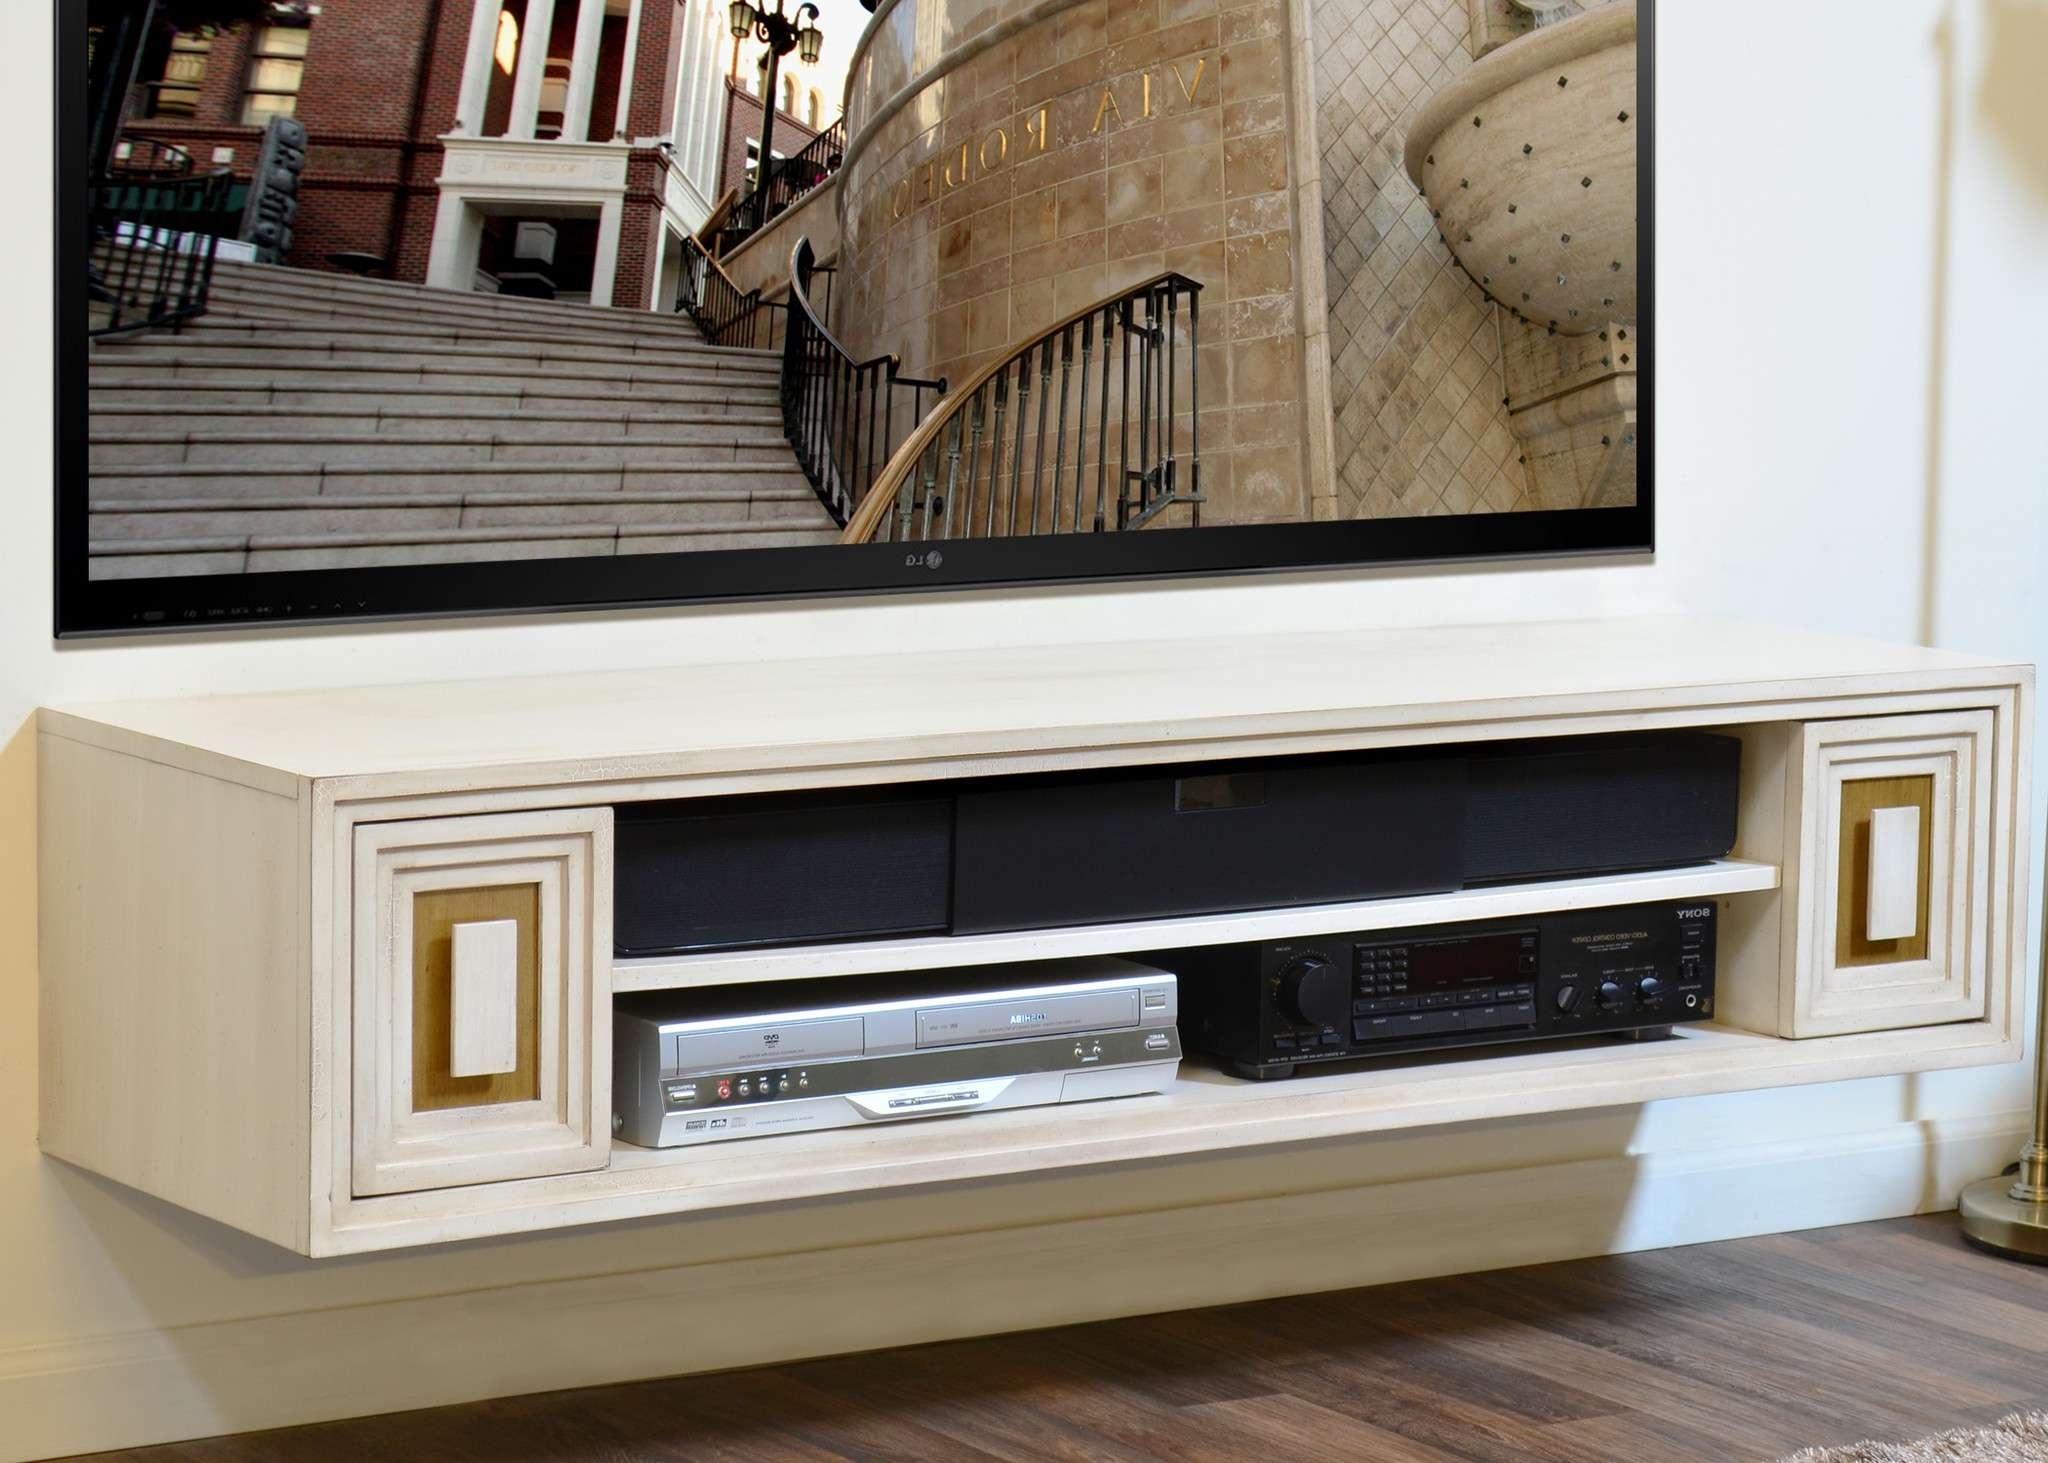 furniture tv gorgeous cupboard stand wells and decors ideas stands amazing as ashley electric design fireplace images